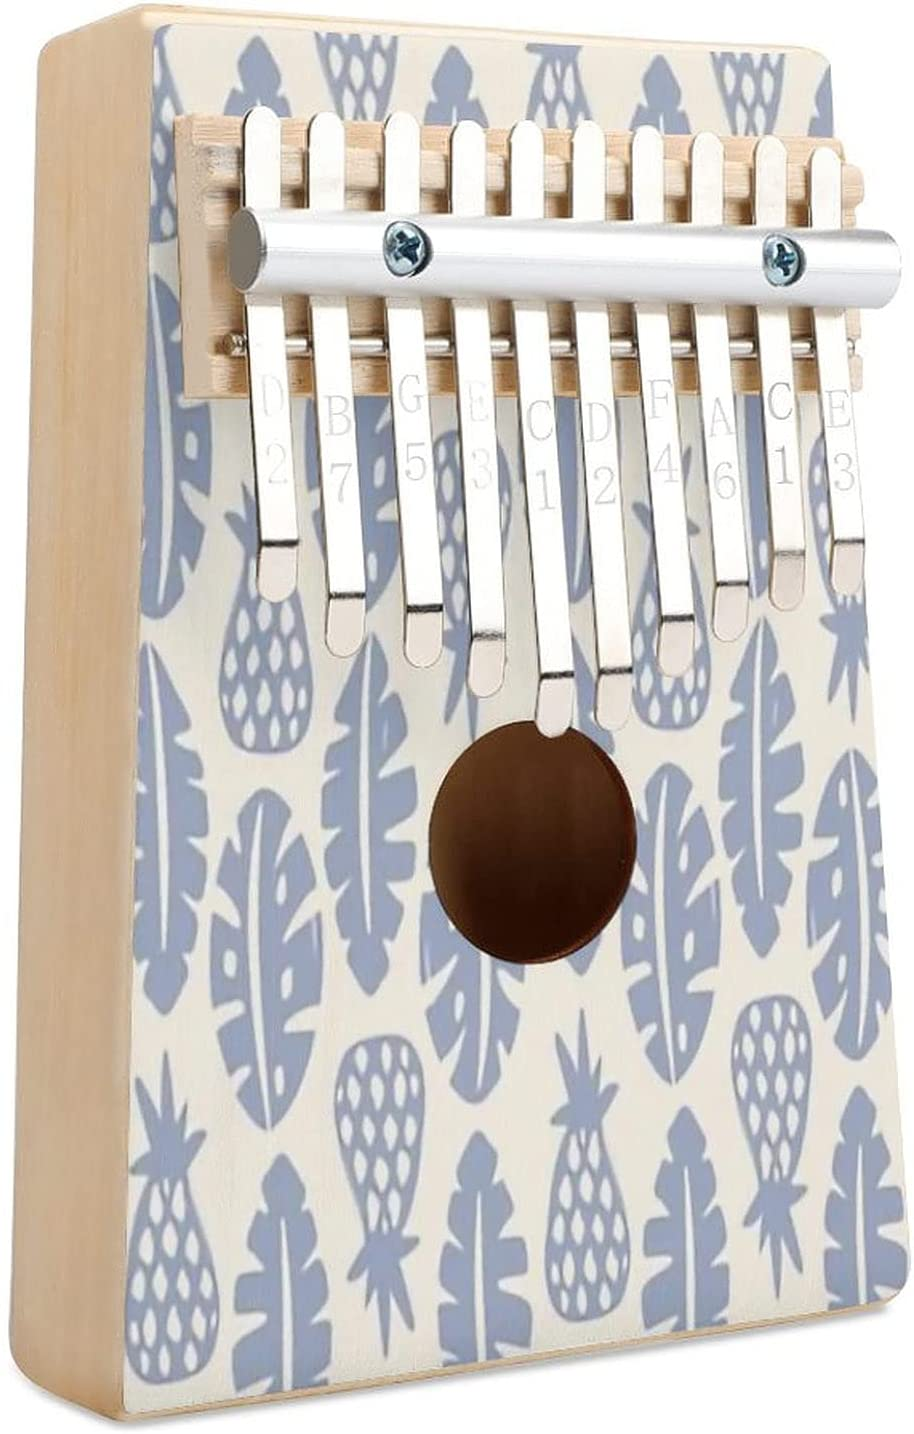 Brand new Rainforest Cream Periwinkle Blue Kalimba Piano Thumb Key 70% OFF Outlet 10 Fing